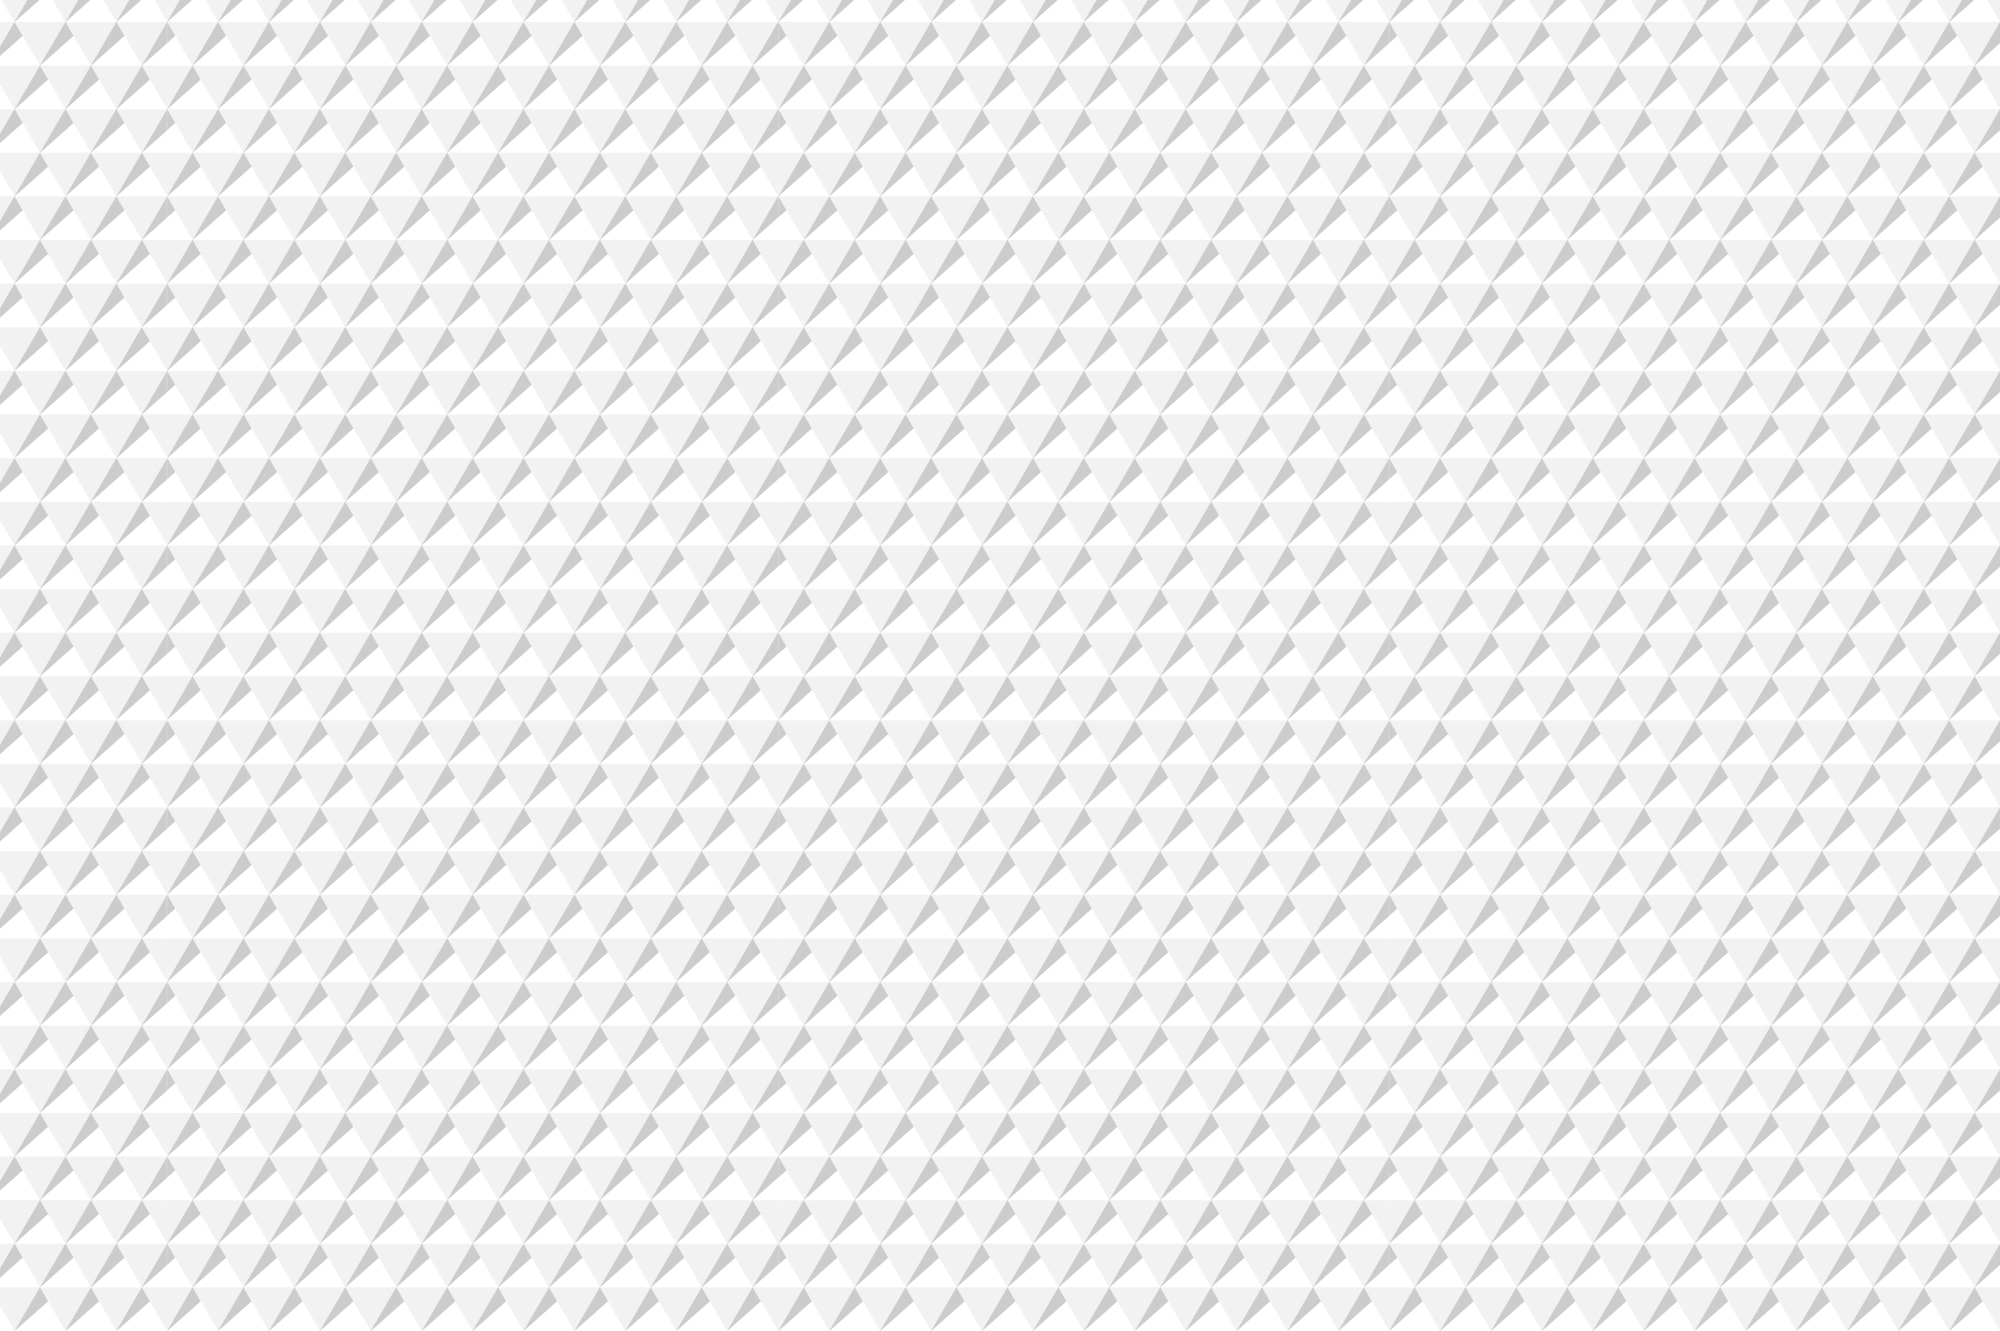 Seamless White 3d Textures. Swatches example image 10